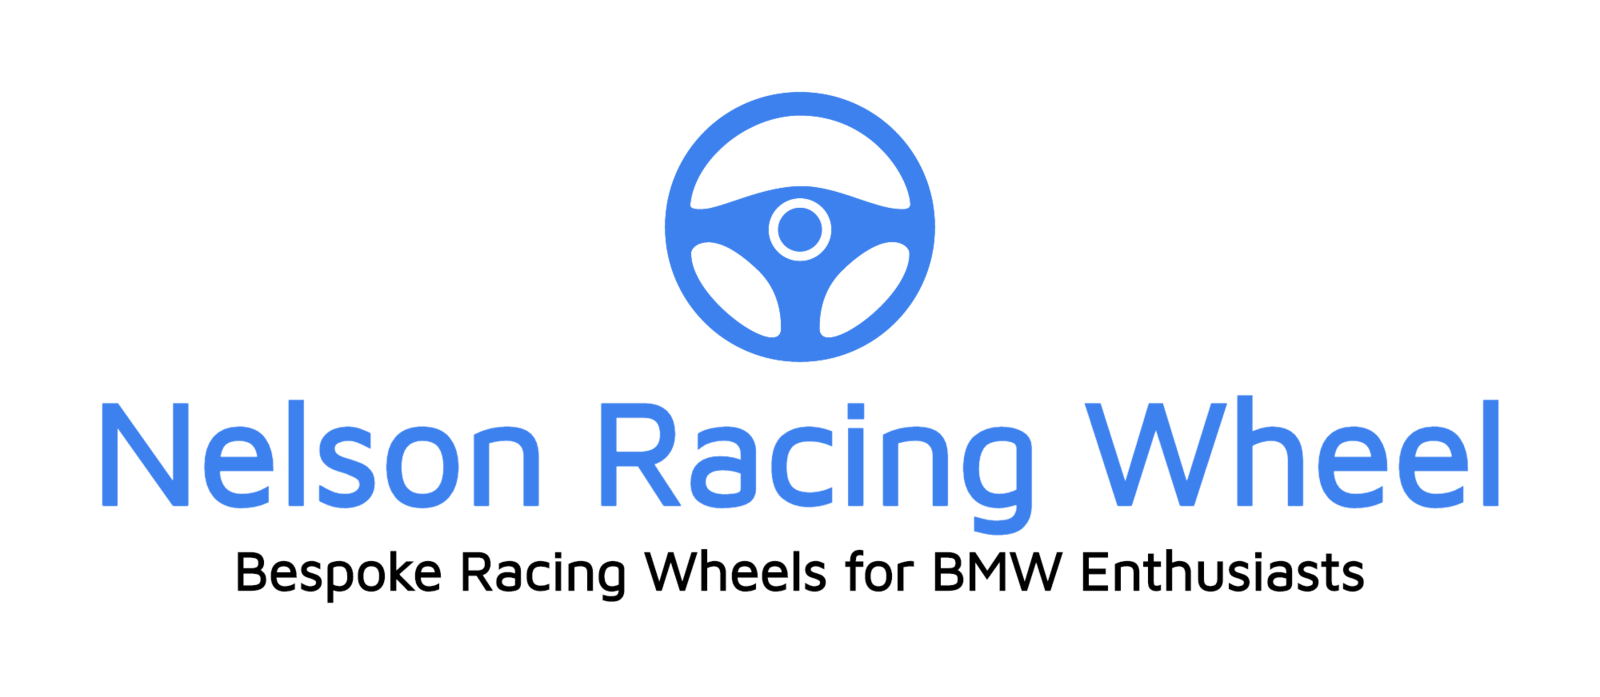 Nelson Racing Wheel-logo.png